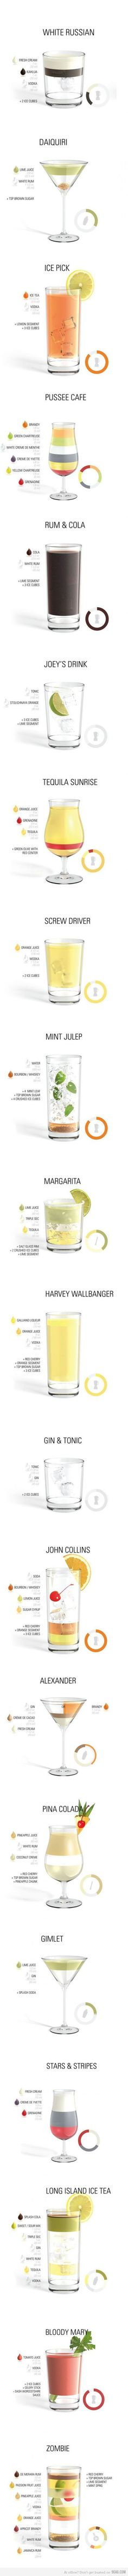 Cocktails as Infographics